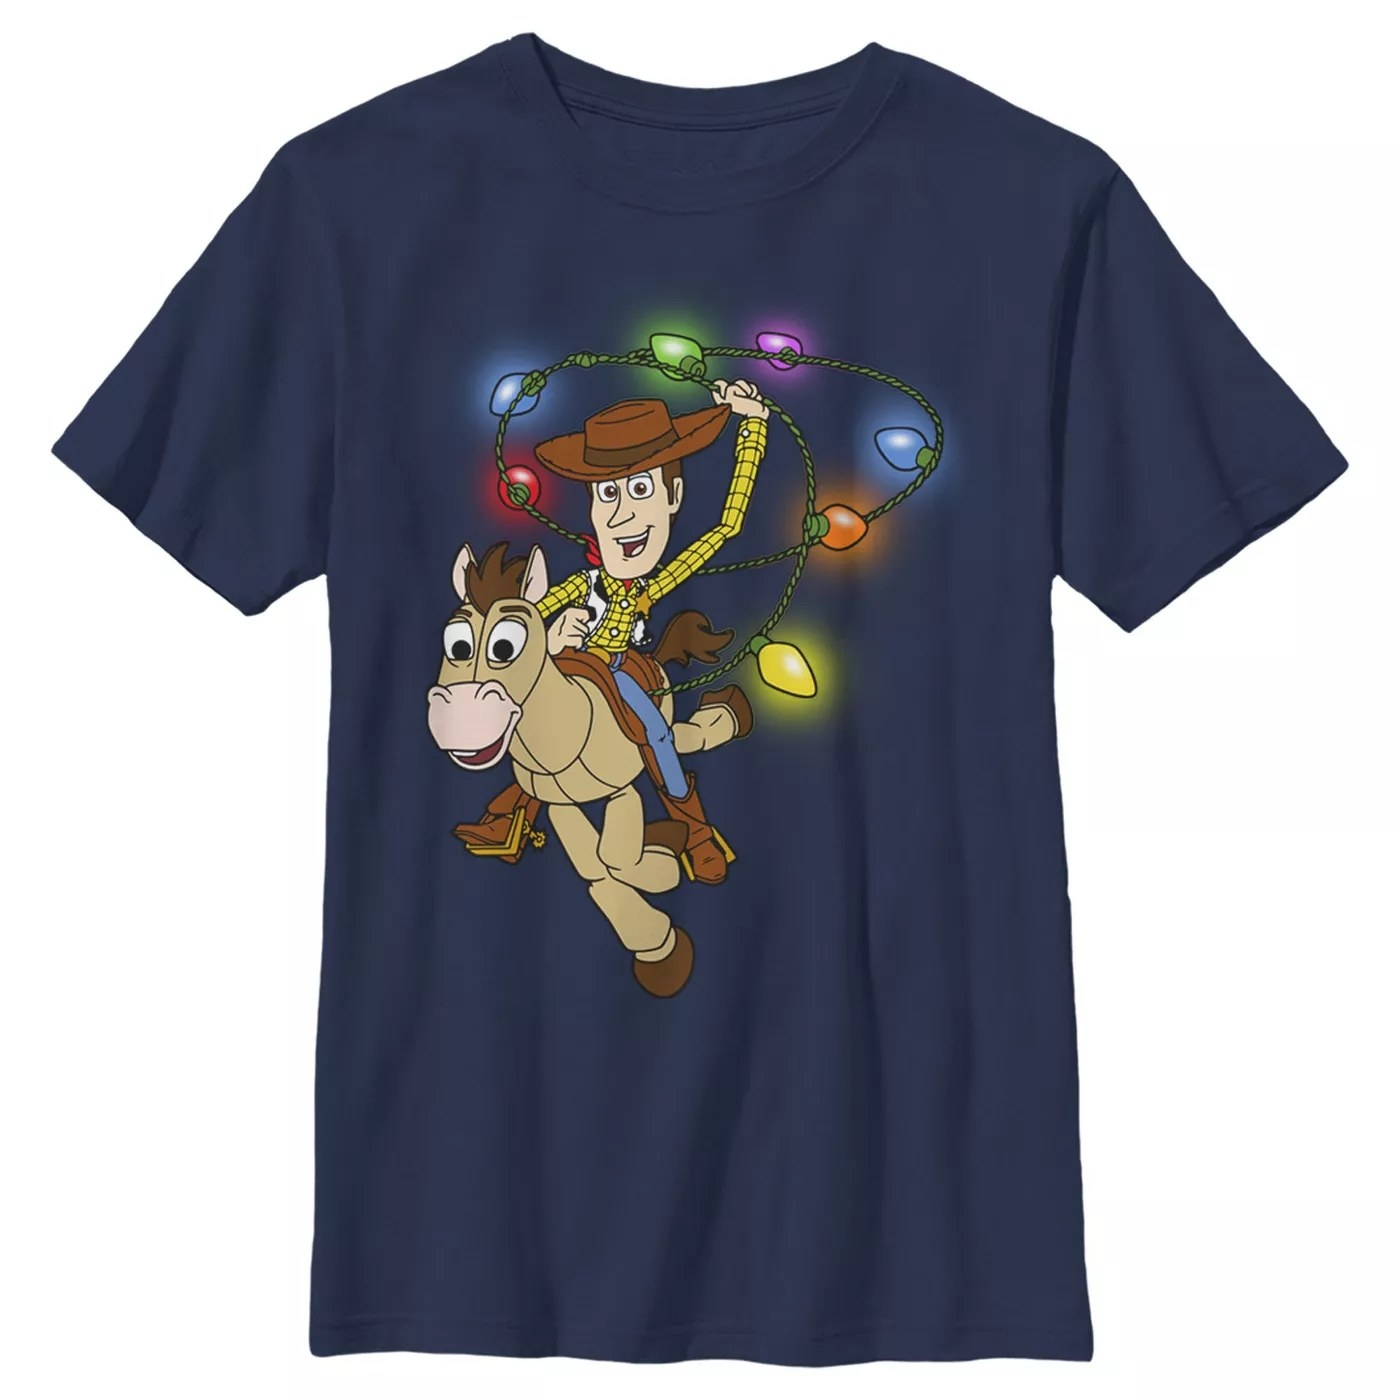 A navy T-shirt with Woody riding Bullseye and spinning a lasso of Christmas lights